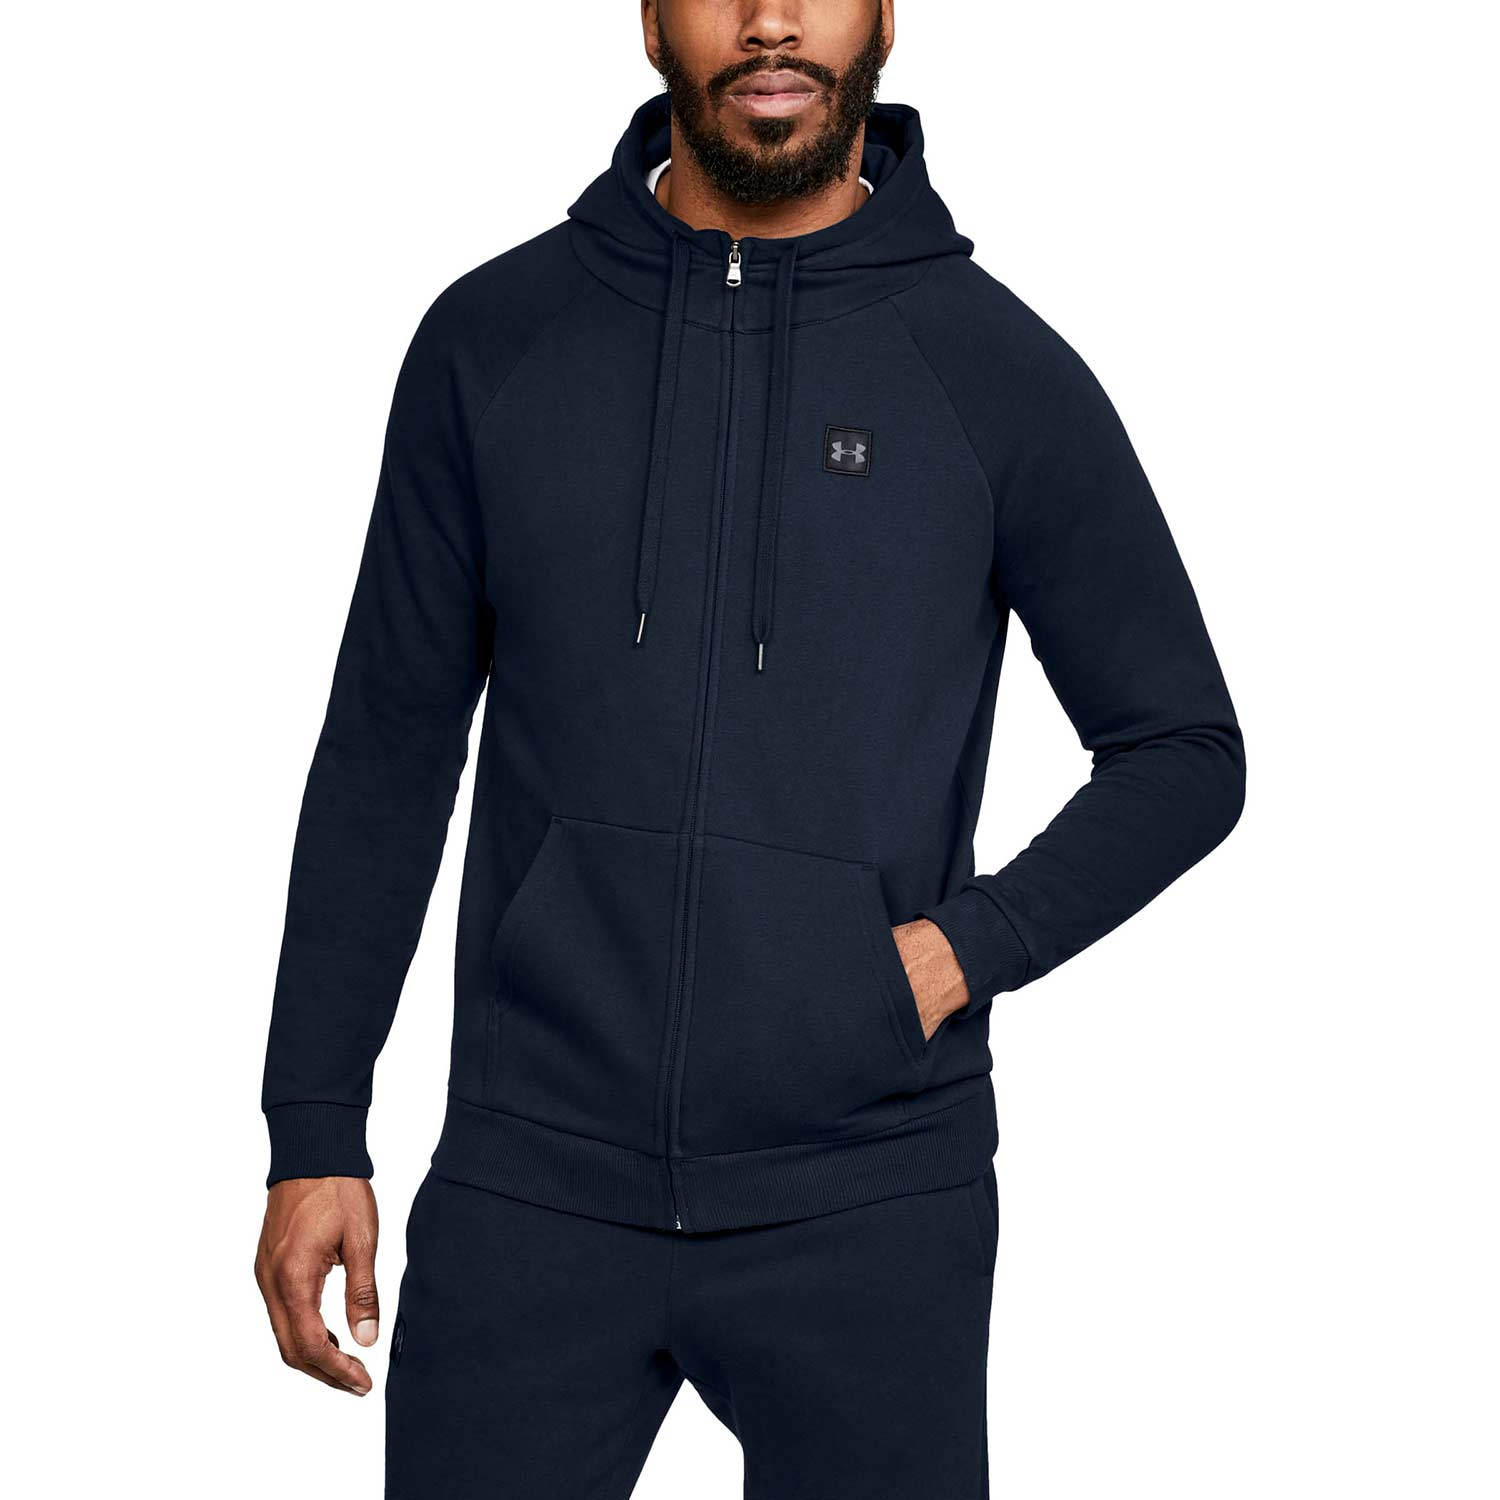 Under Armour Rival Fleece Full-Zip Hoodie